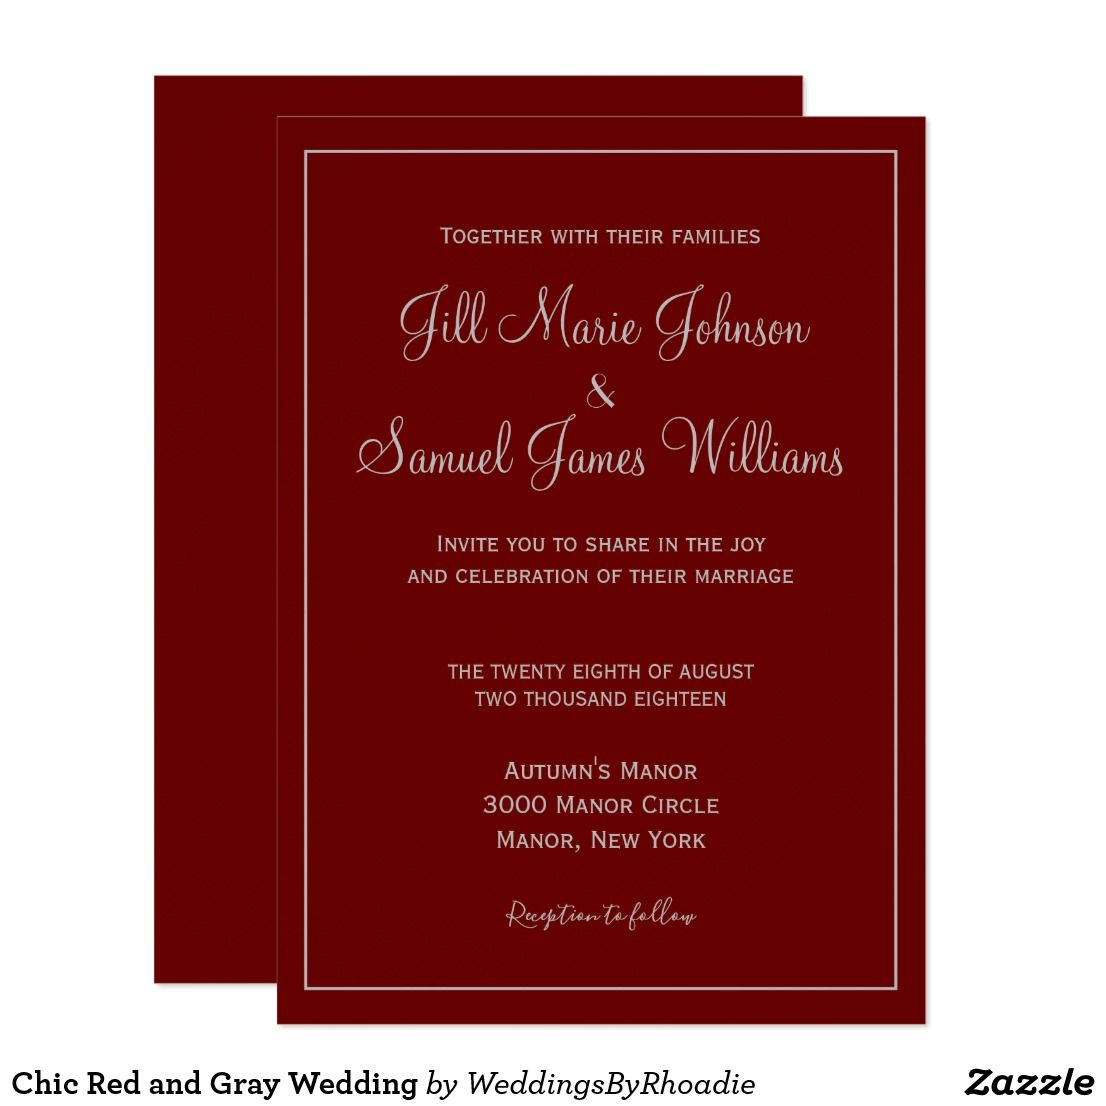 Chic Red and Gray Wedding Invitation in 2018 | Bridal | Pinterest ...